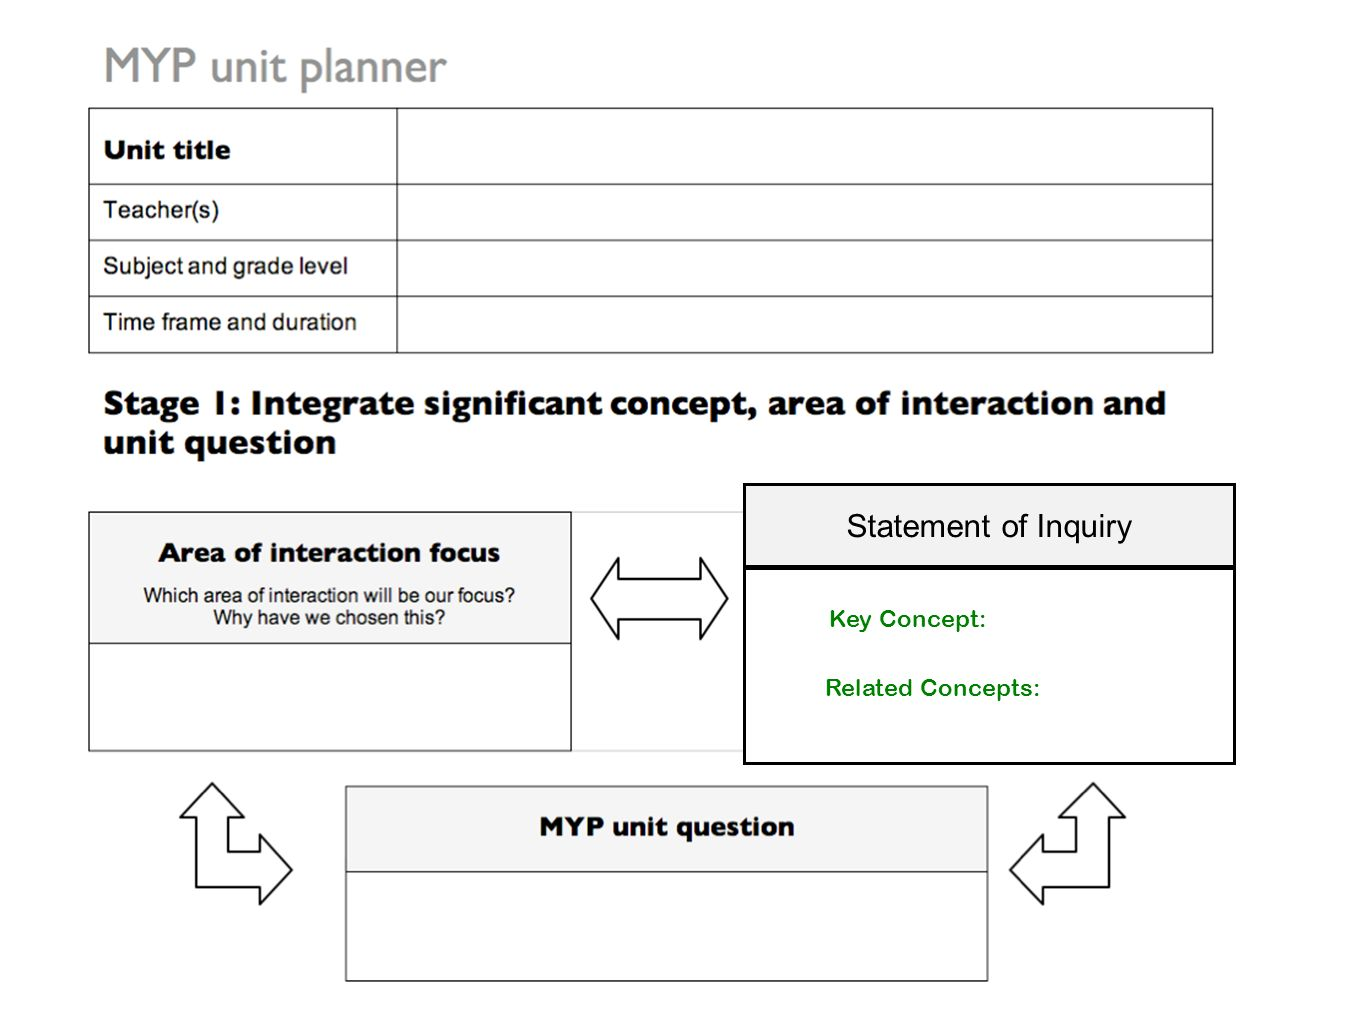 Statement of Inquiry Key Concept: Related Concepts: